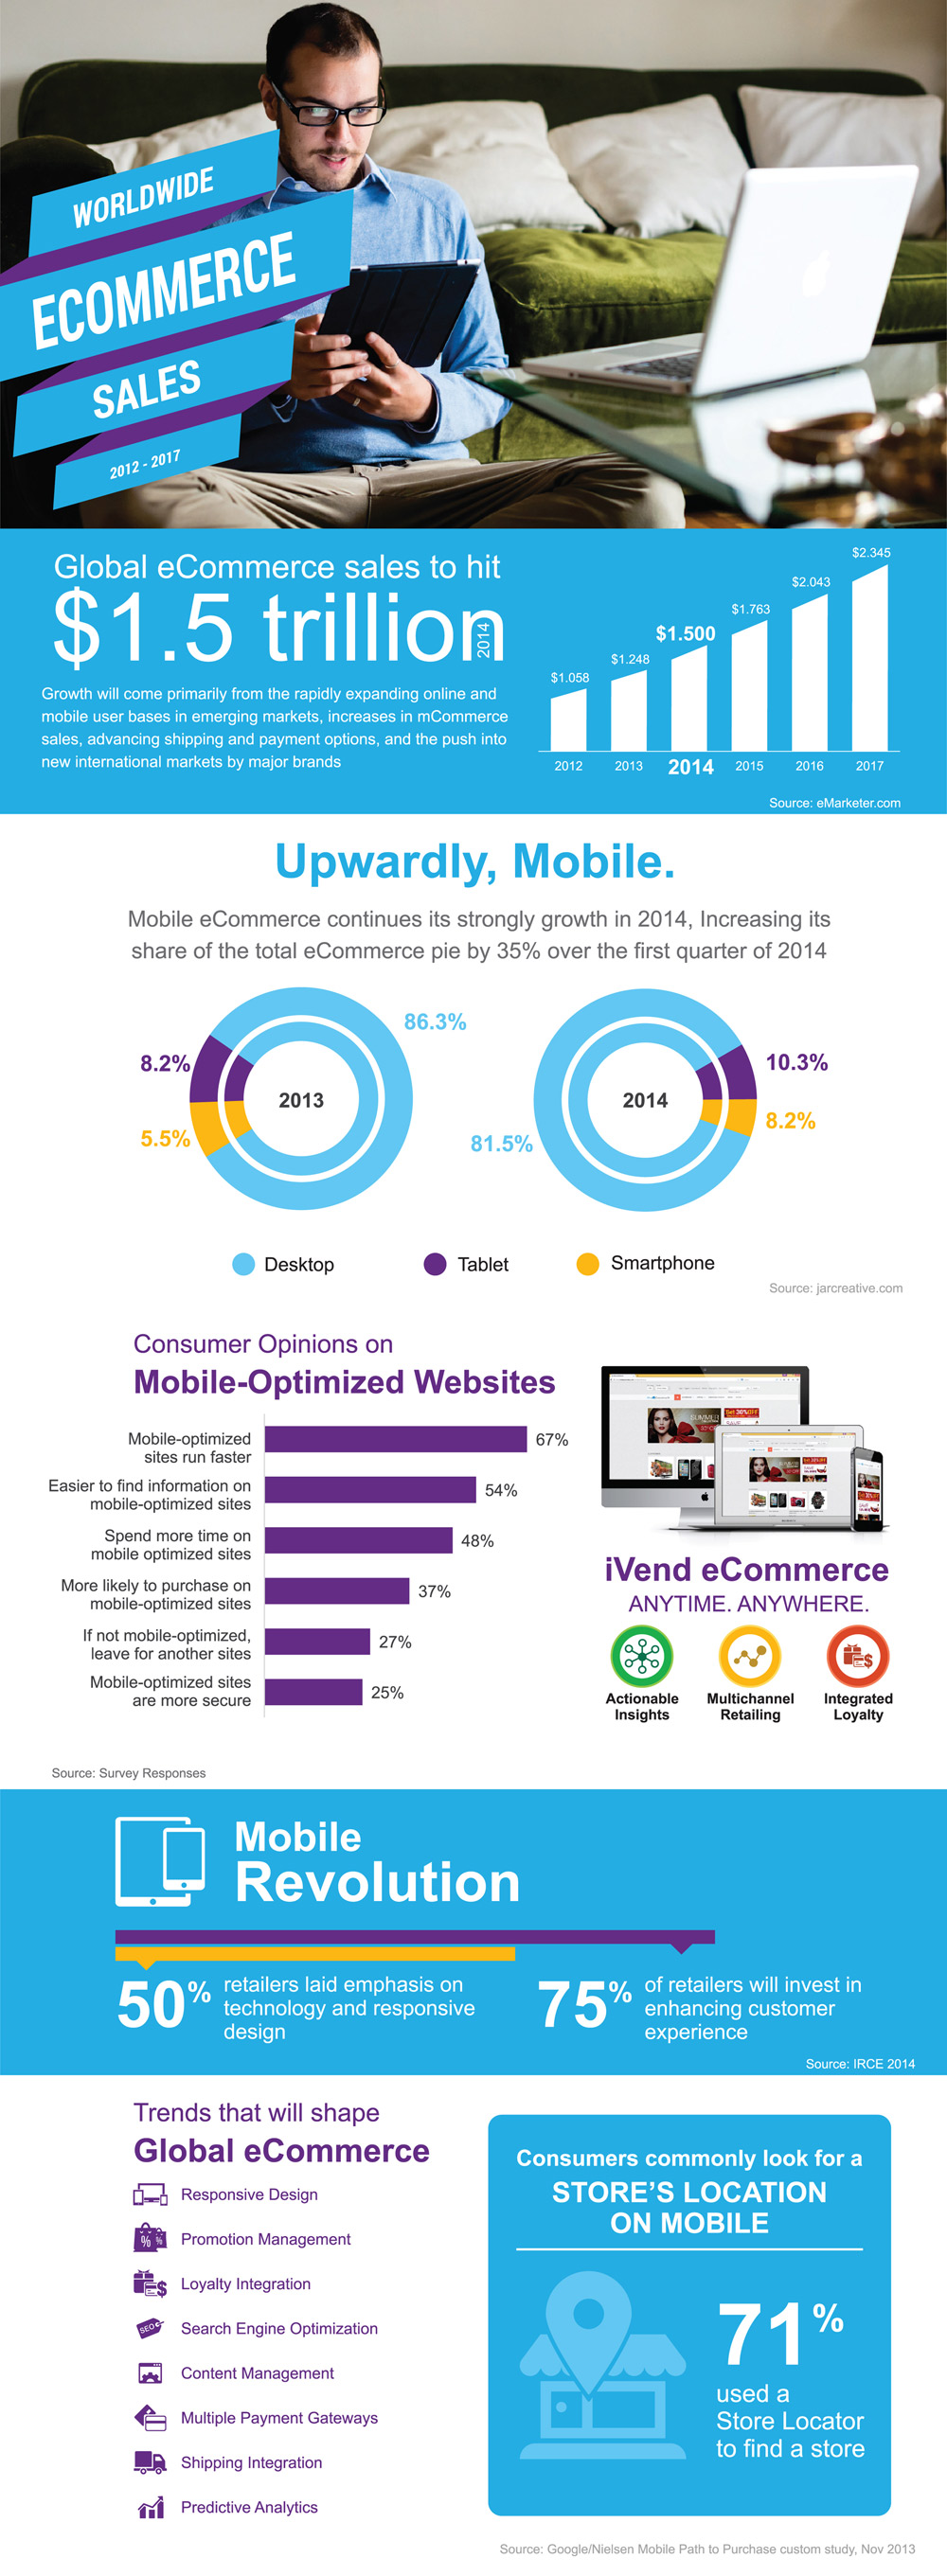 Global eCommerce sales and trends - Infographic